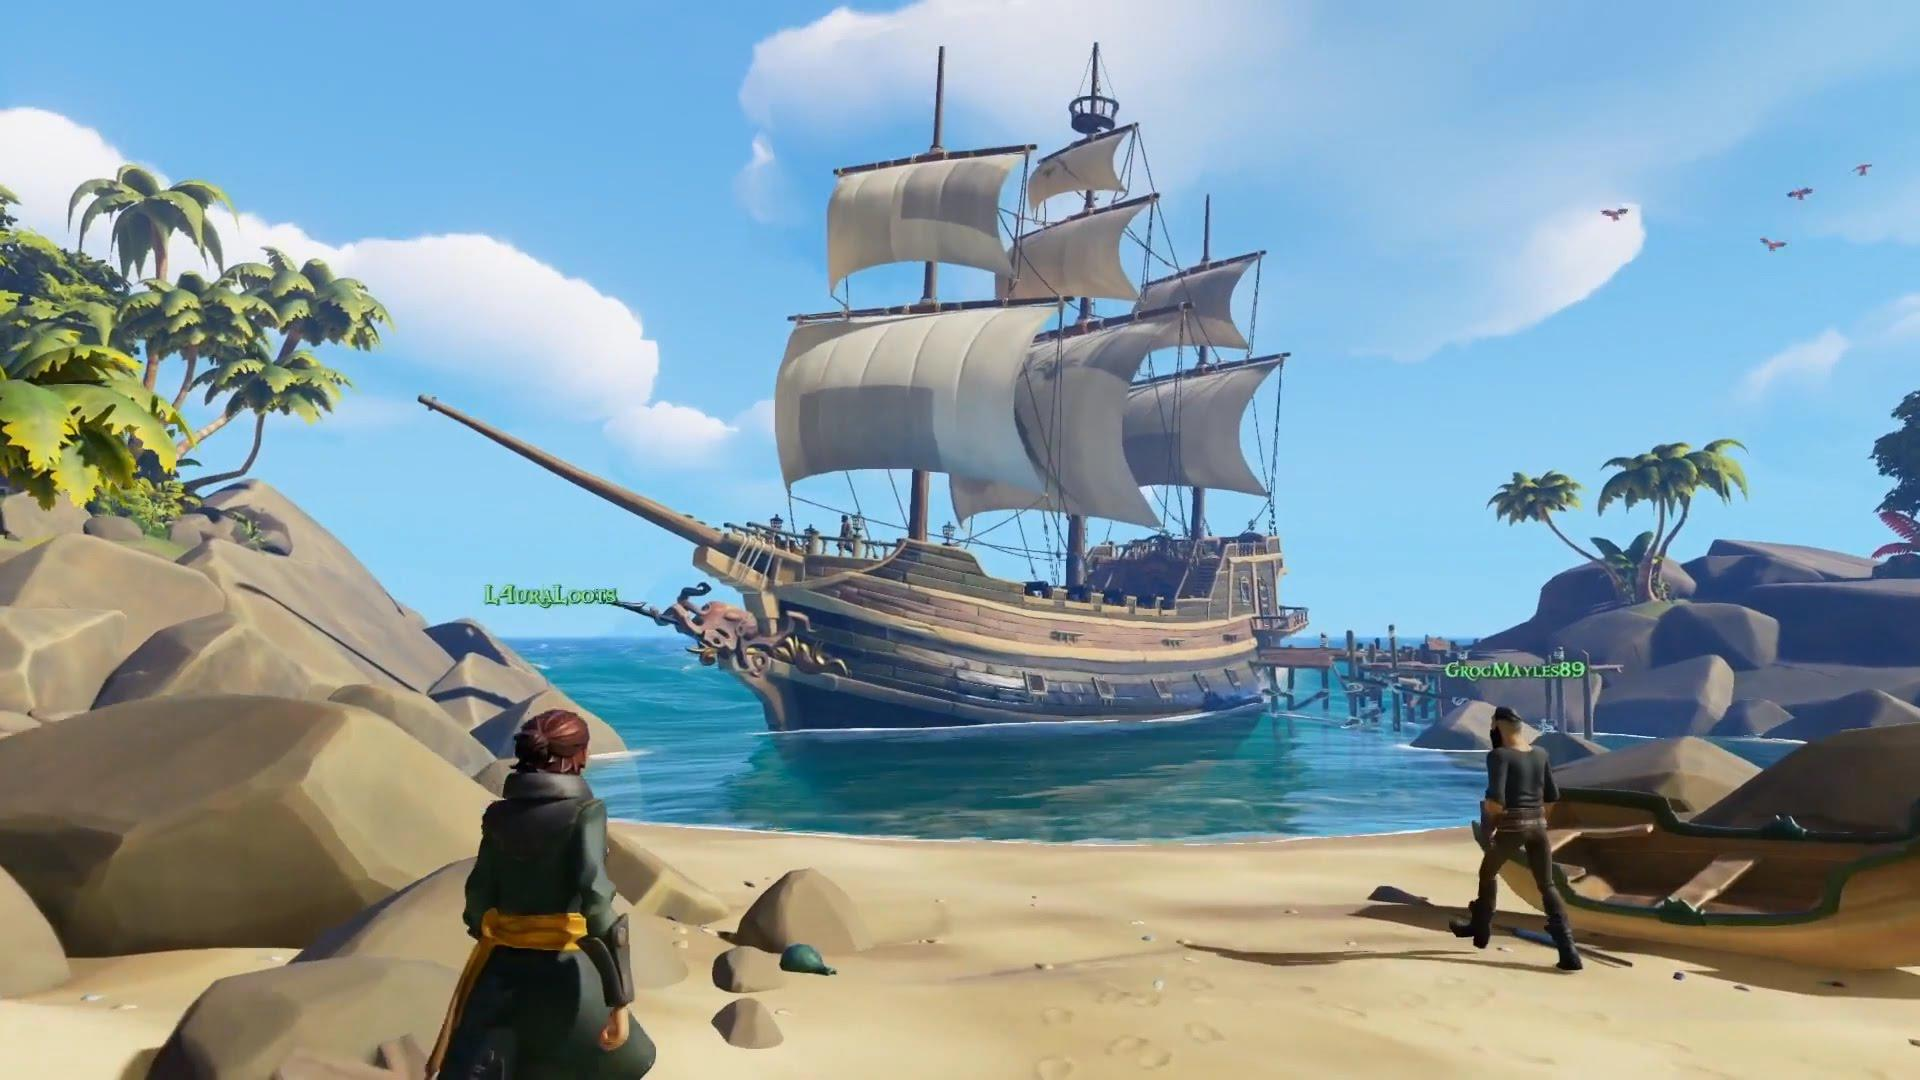 Sea of Thieves has been in production for some time – but fans will need to wait a bit longer to get their hands on it